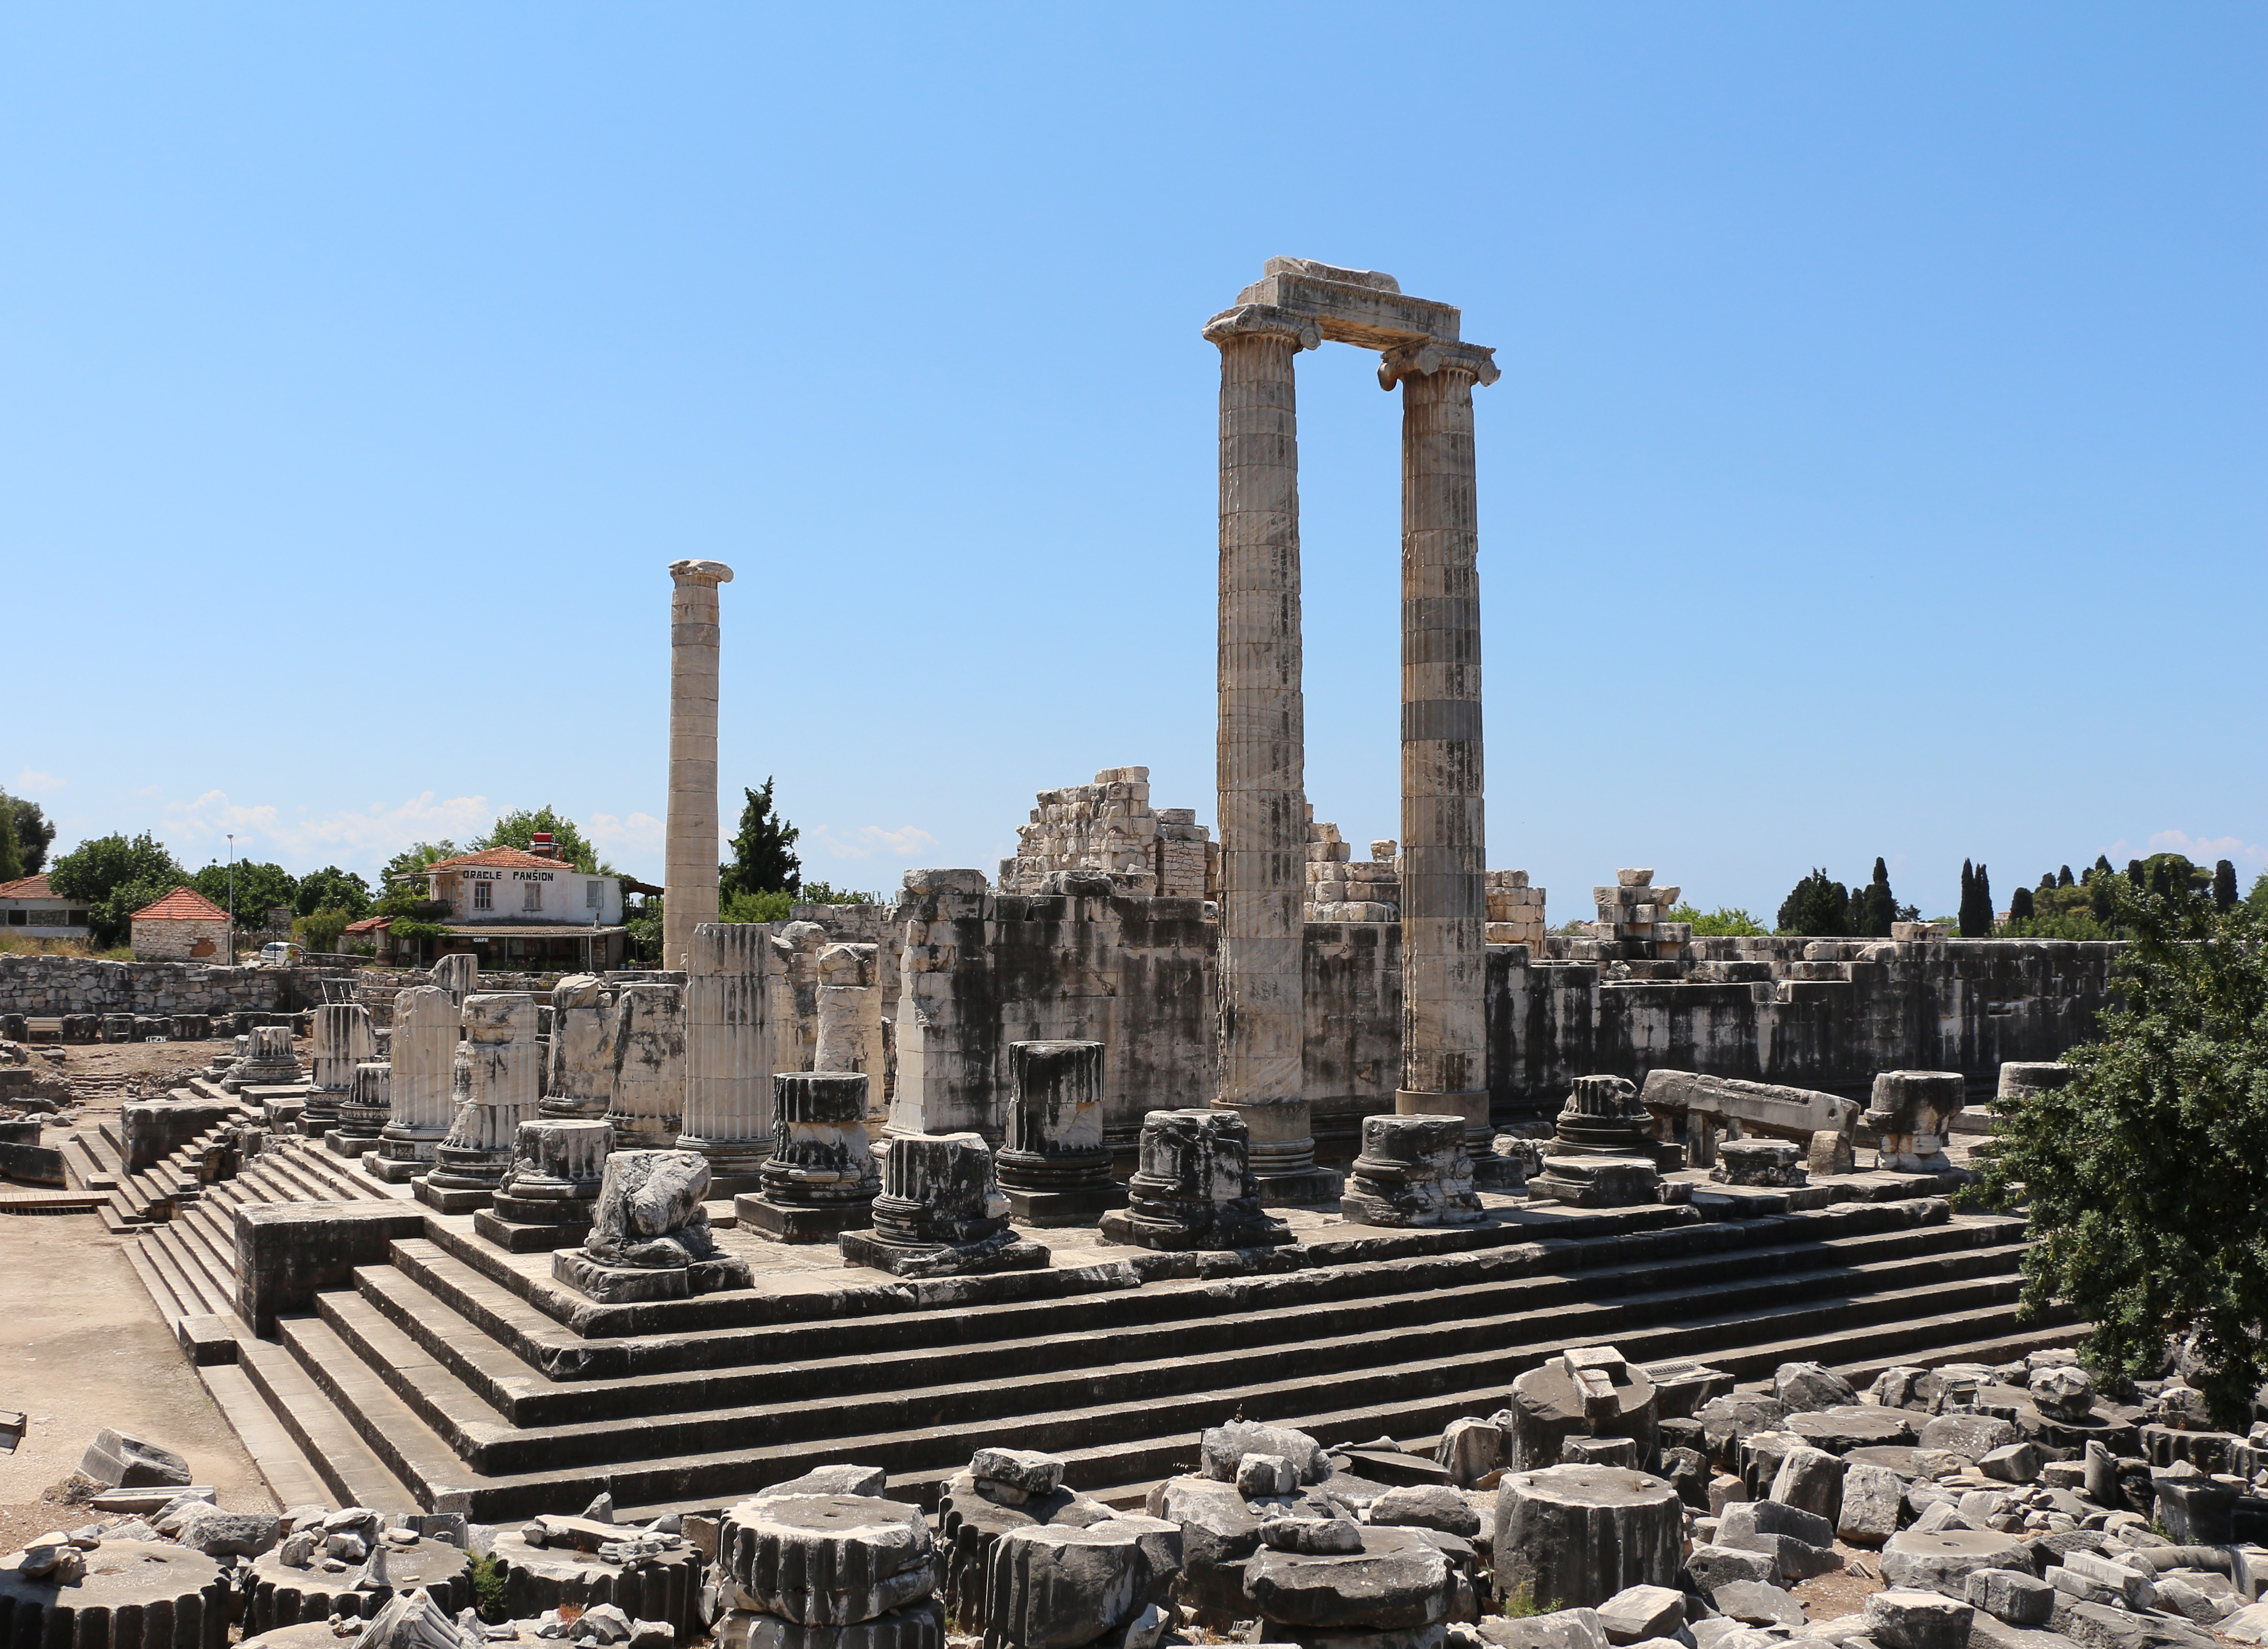 File:Temple of Apollo, Didyma 02.jpg - Wikimedia Commons